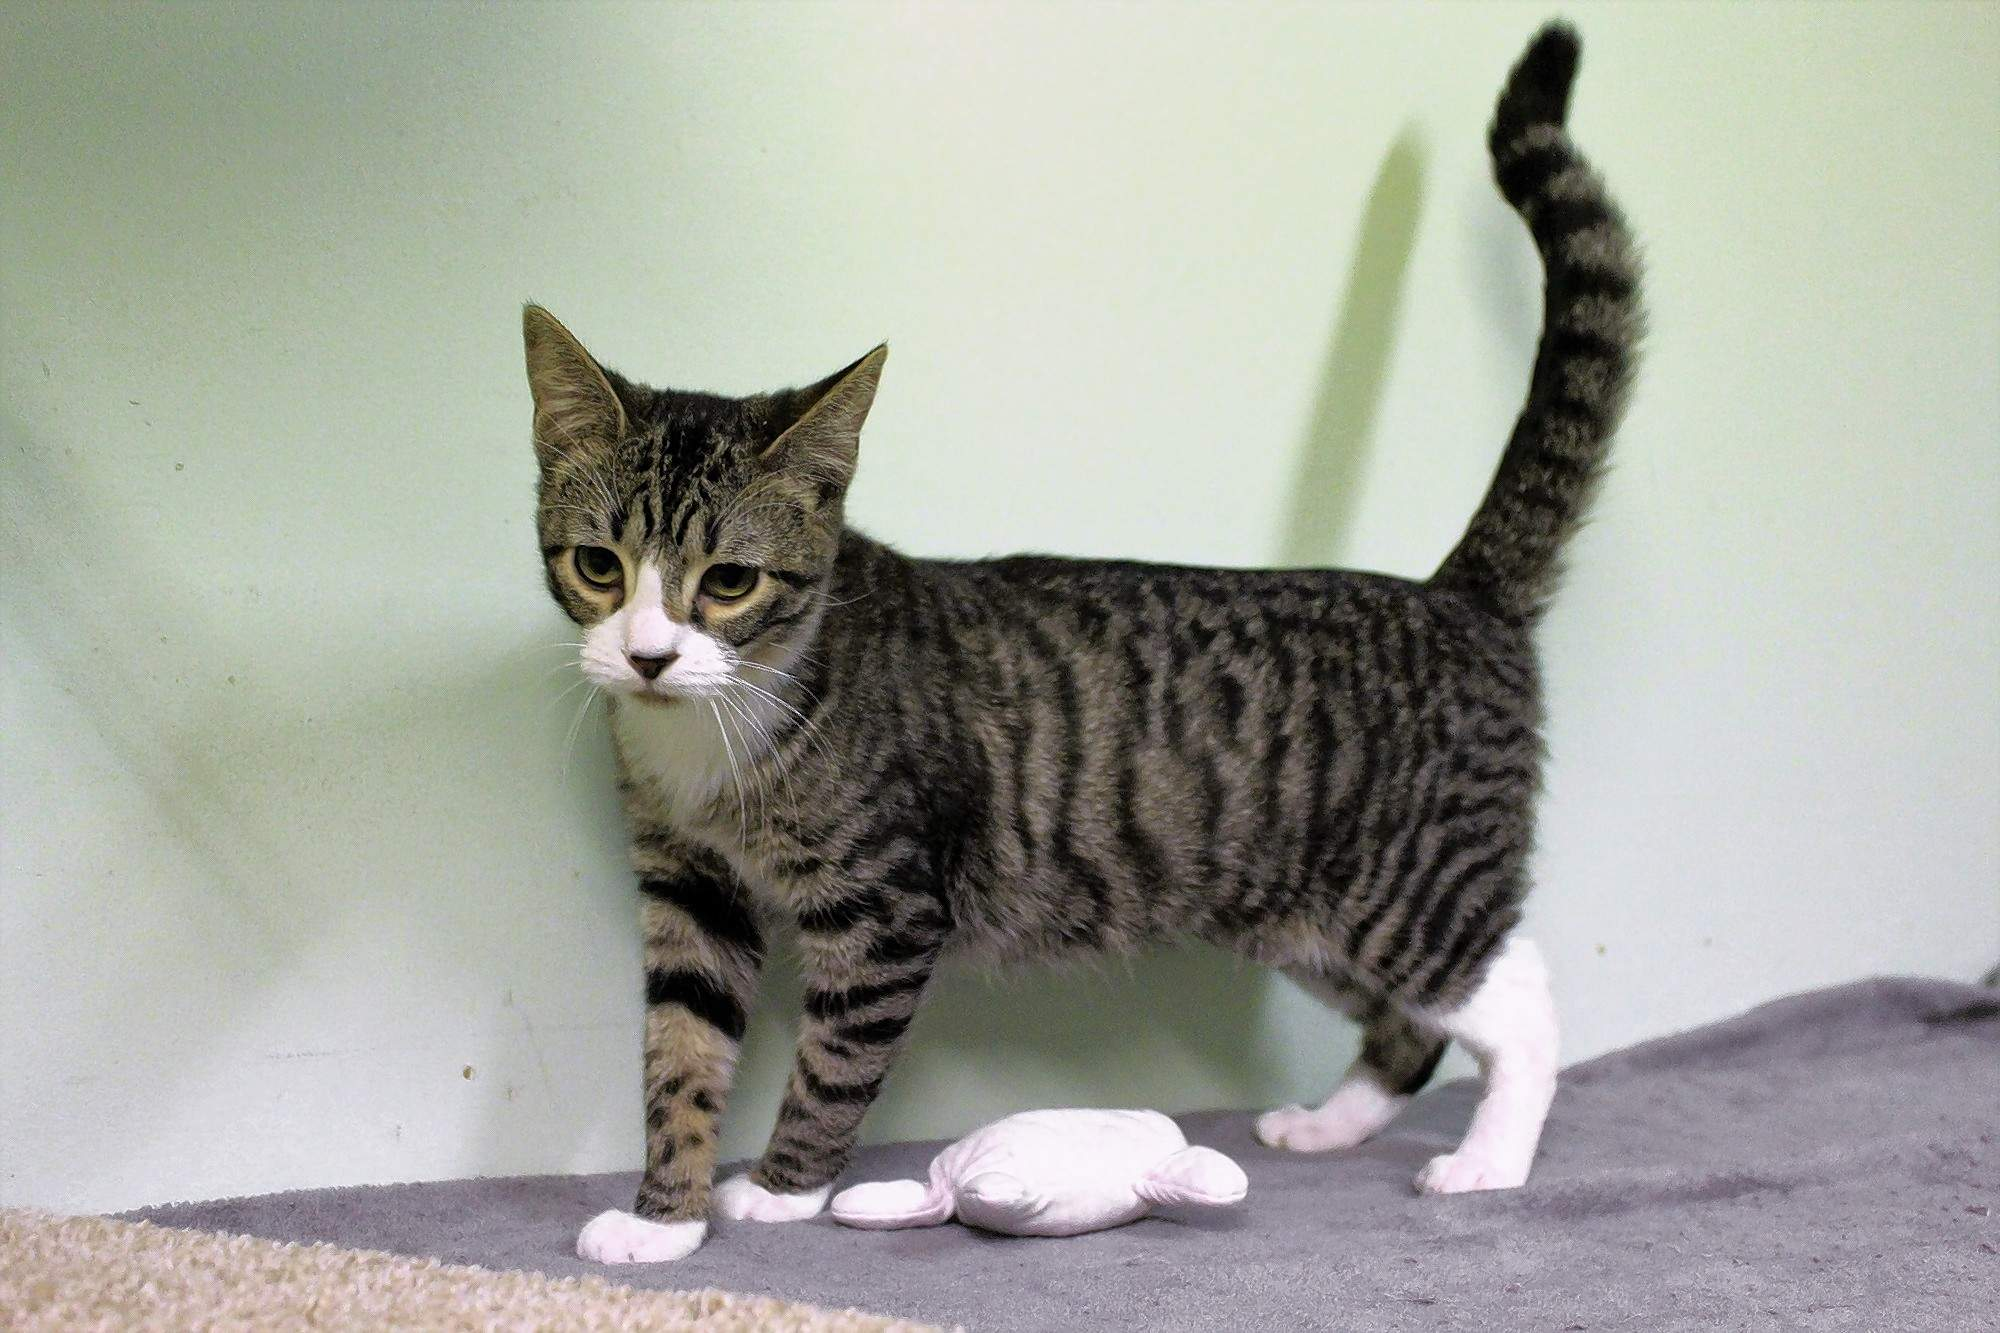 Eggroll is a playful and gentle tabby all dressed up in his finest white boots. He's 9 months old and in need of a home.